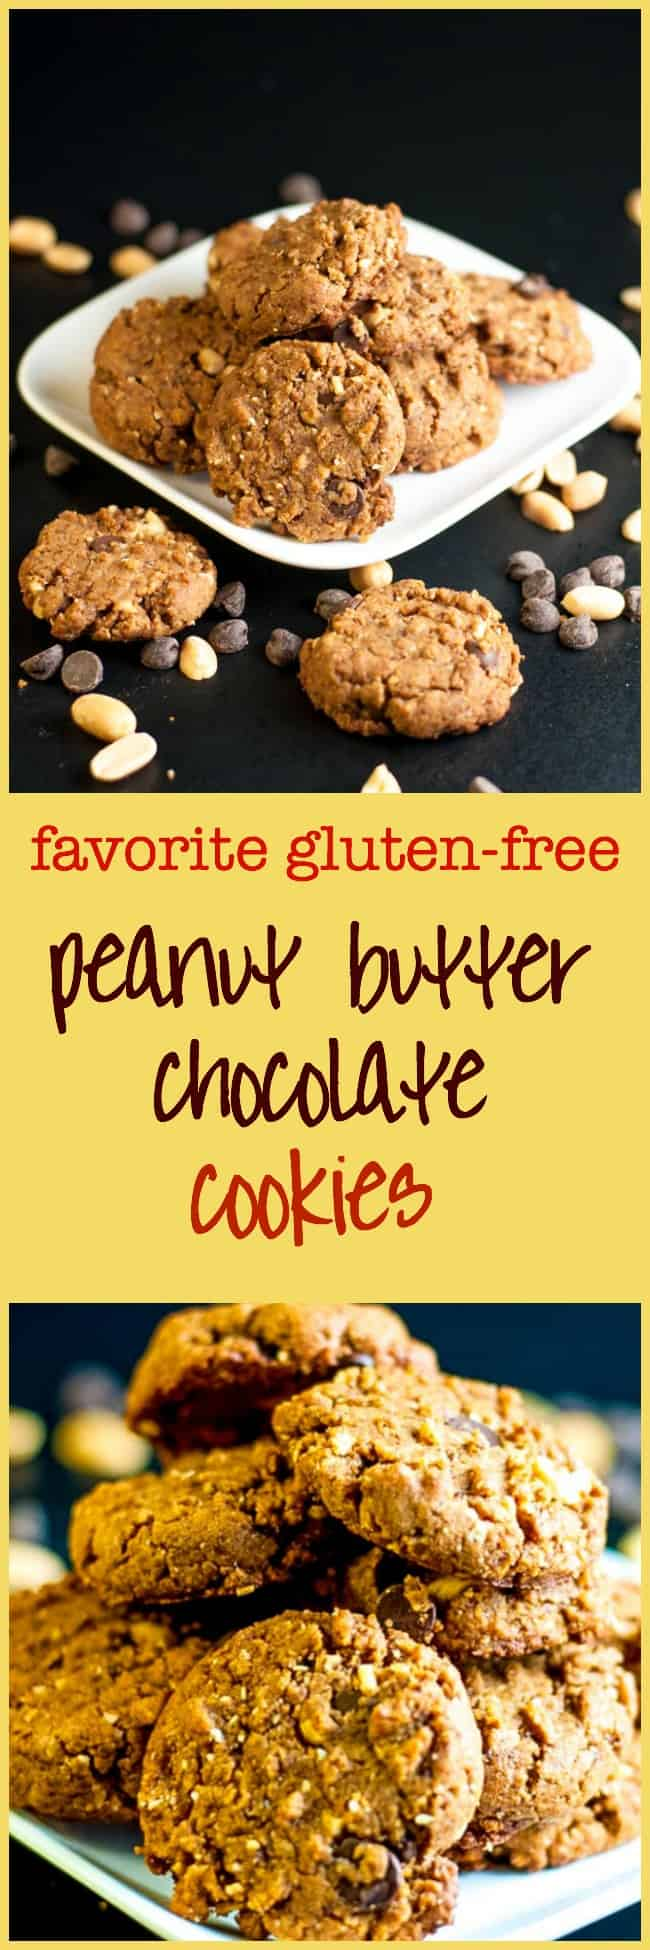 My Favourite Gluten-Free-Peanut-Butter-Chocolate-Cookies. This recipe makes soft but sturdy cookies with crunchy peanuts and sweet chocolate chips.